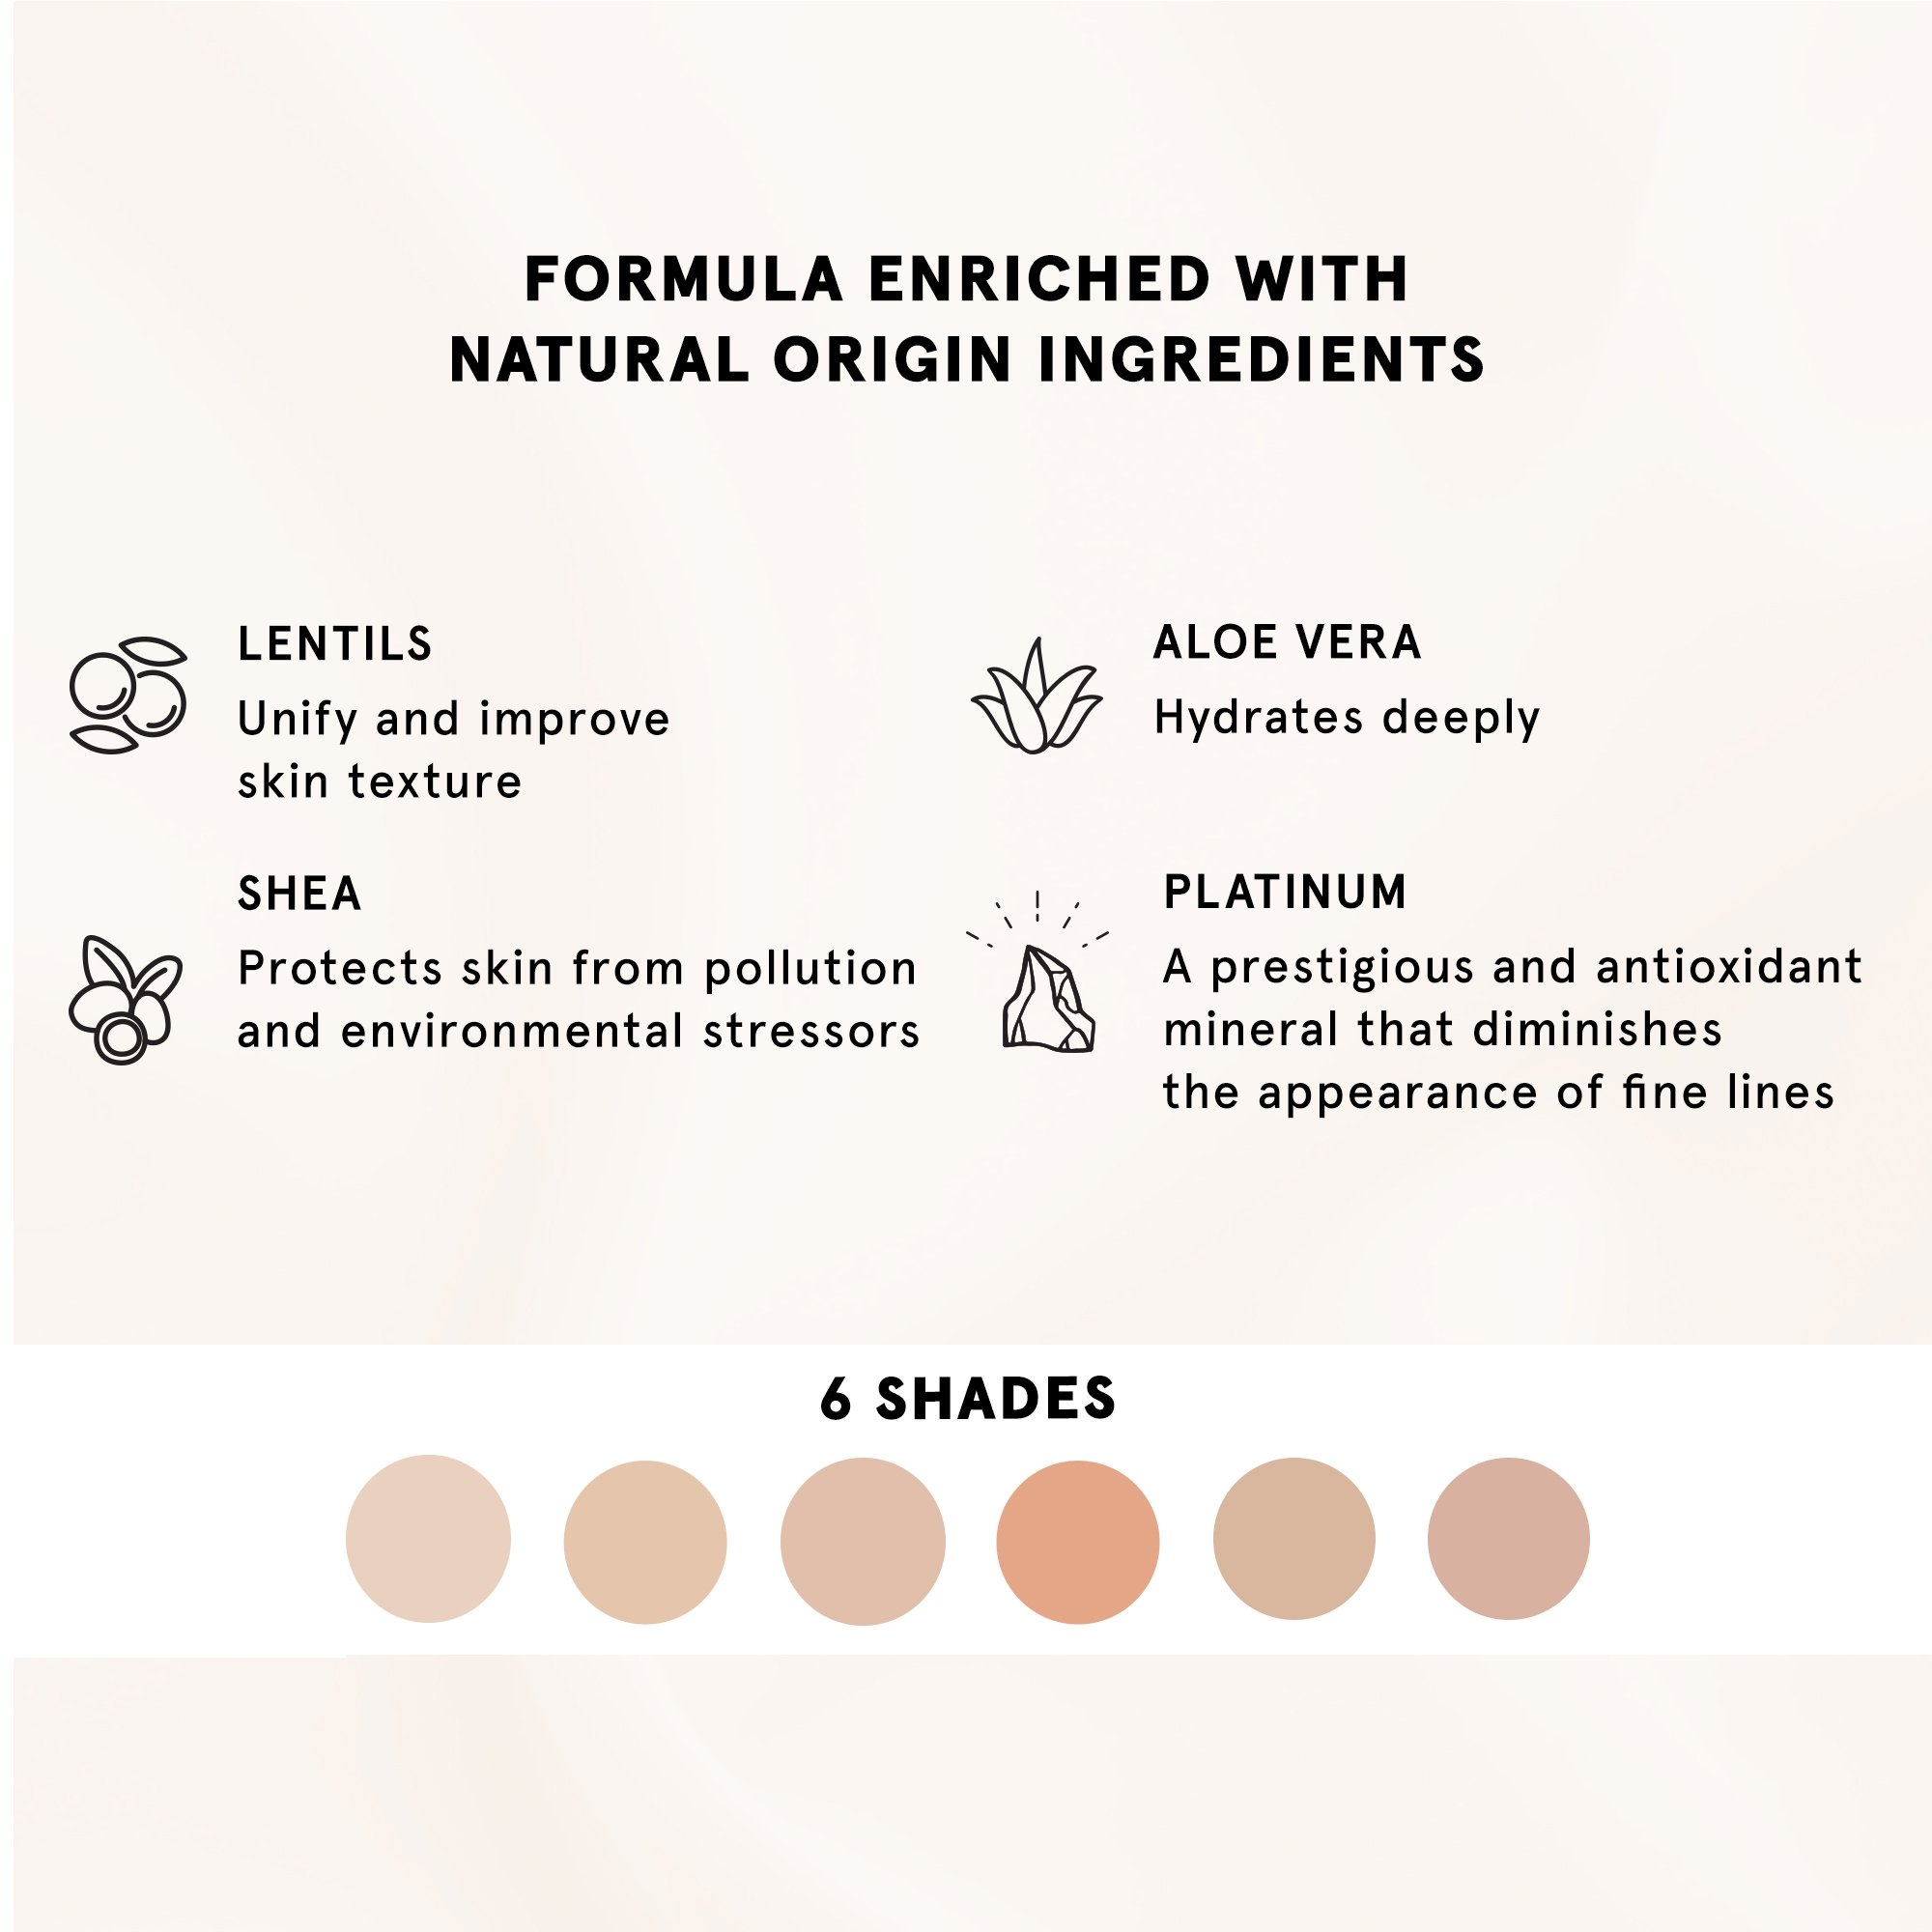 ingredients and benefits